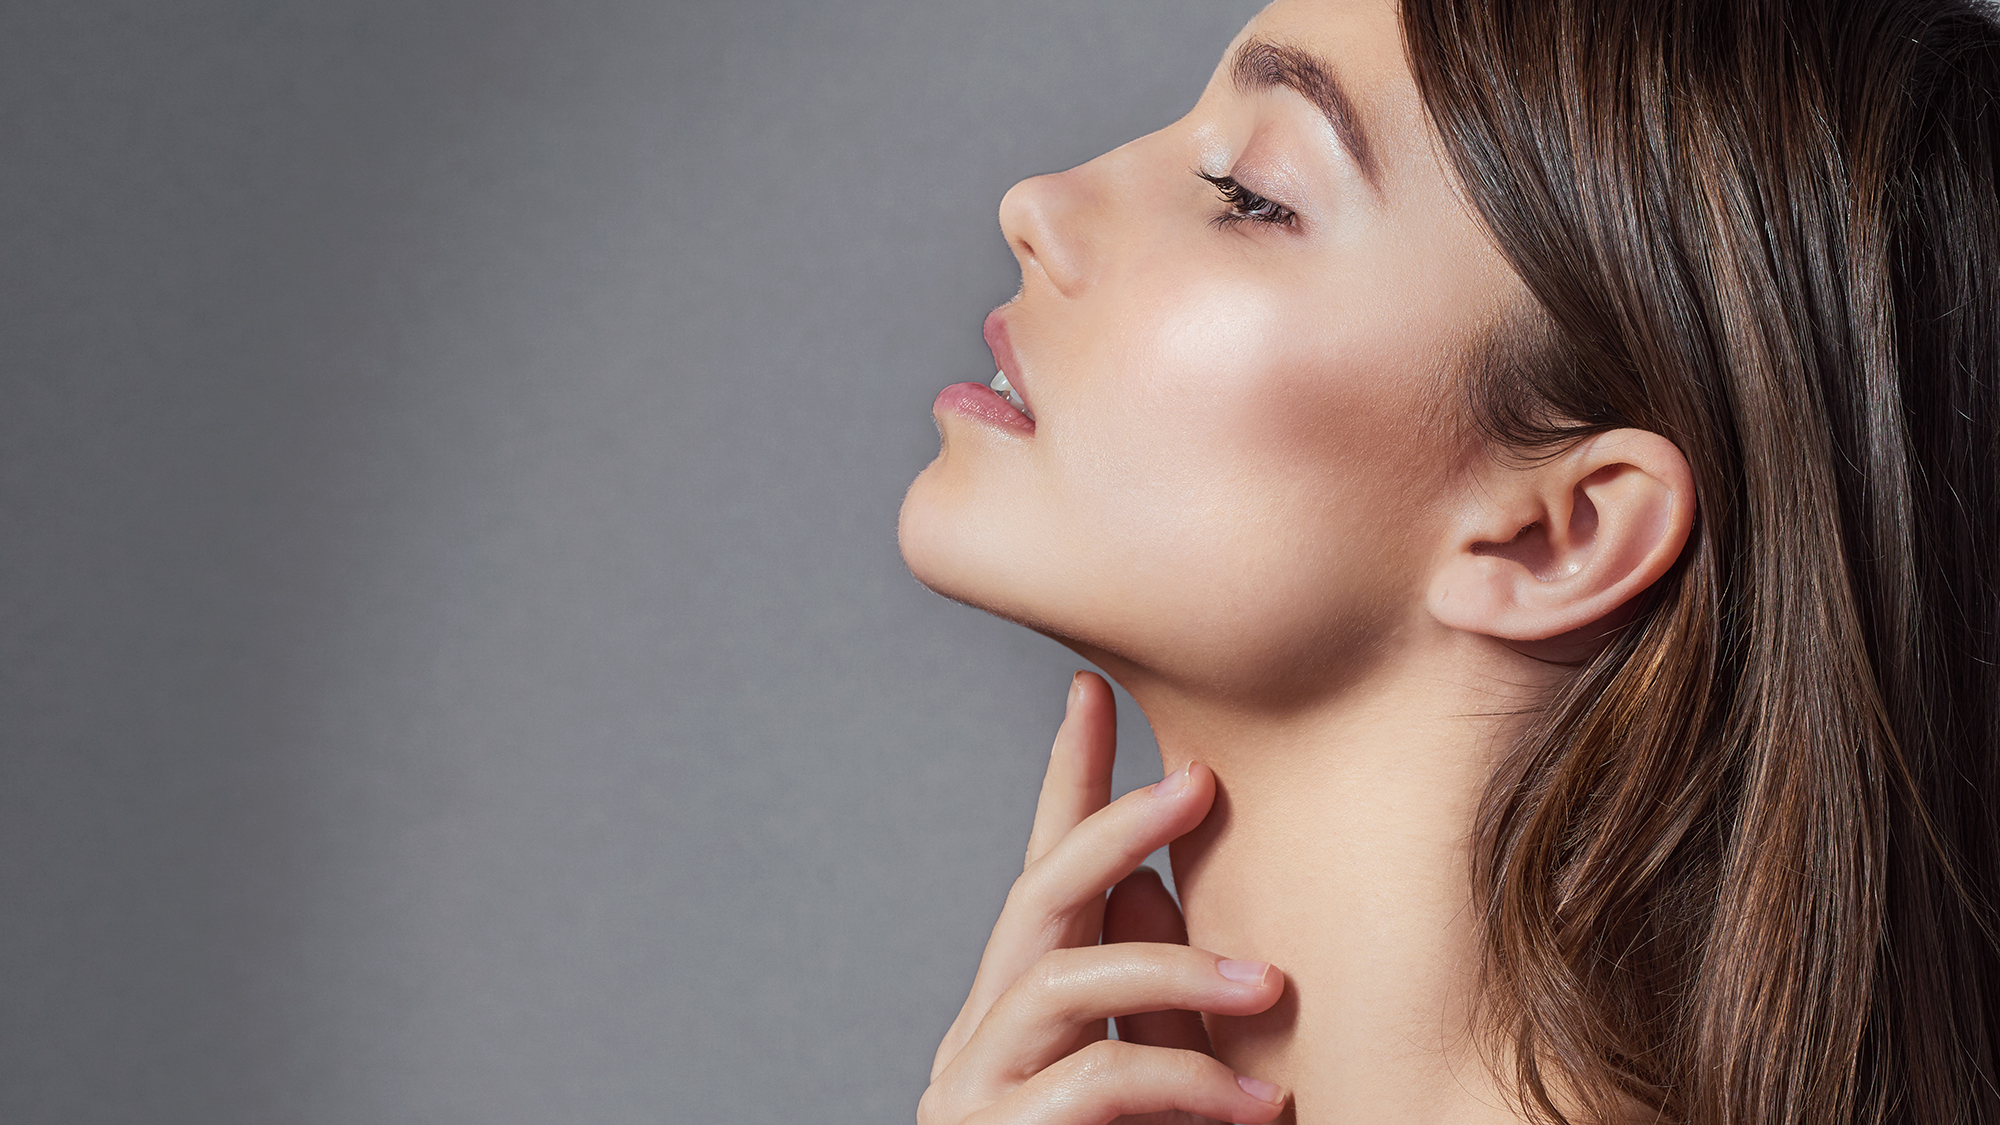 Are neck creams worth it? Not according to these two skin experts